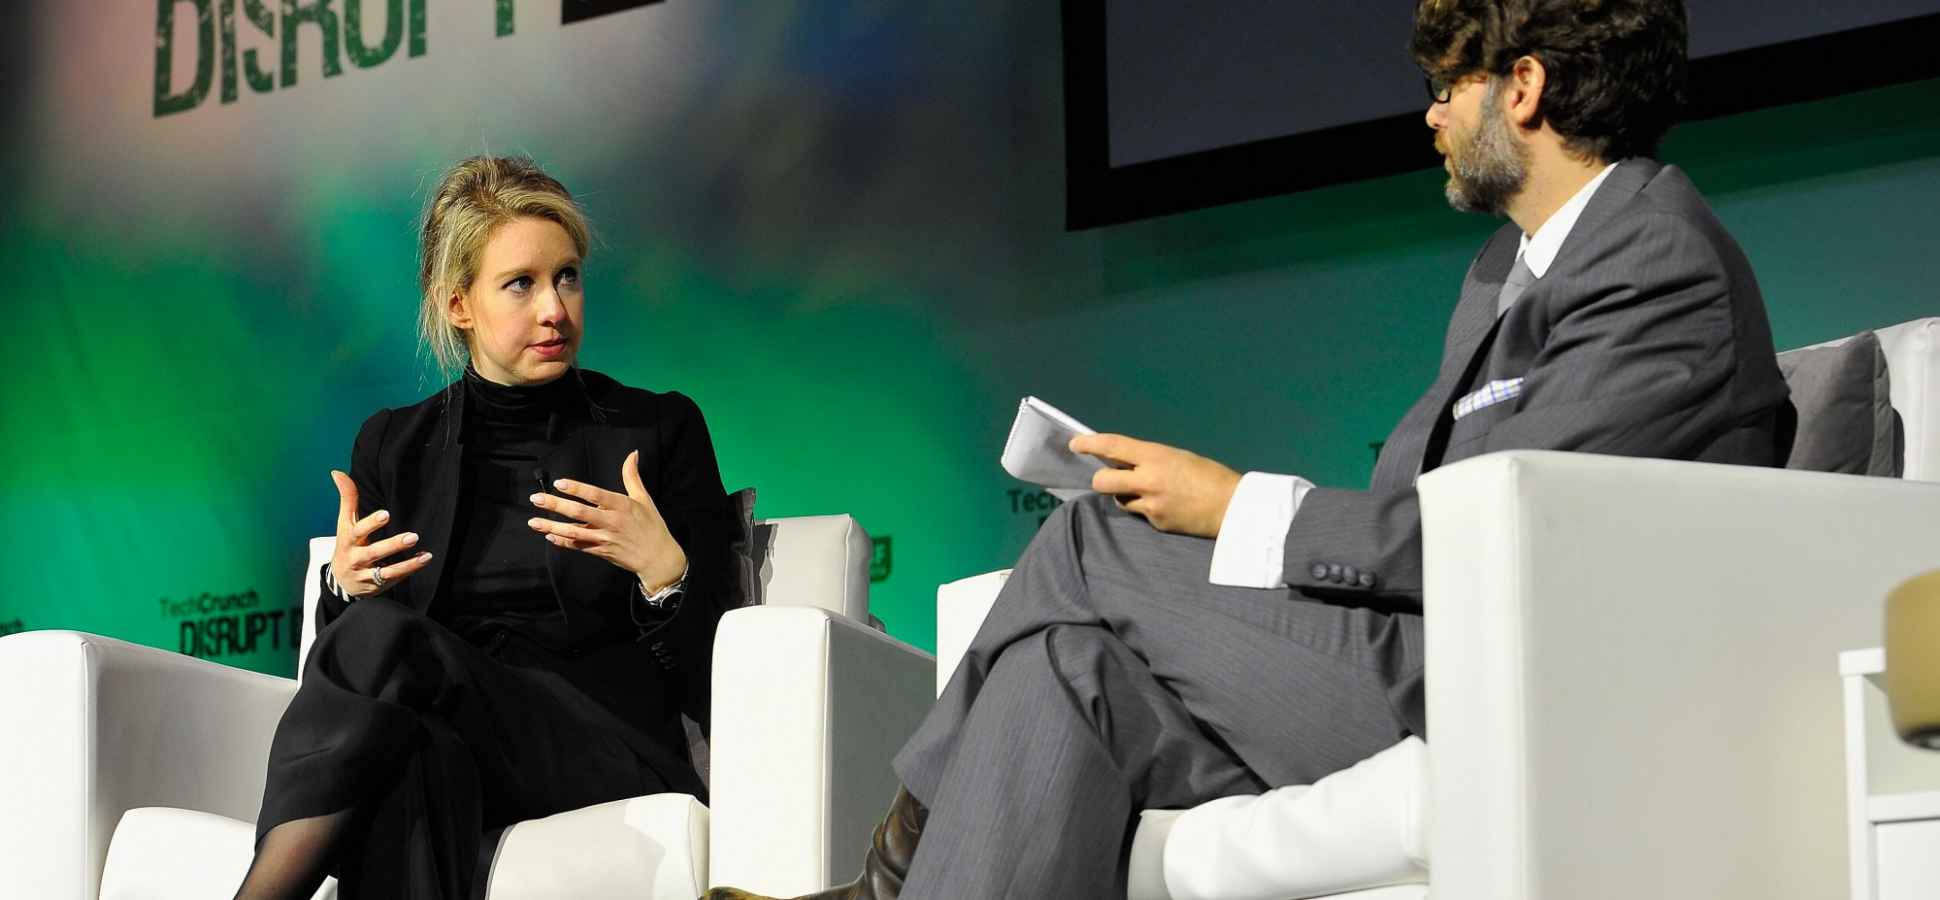 3 Lessons Entrepreneurs Can Learn From the Theranos Saga